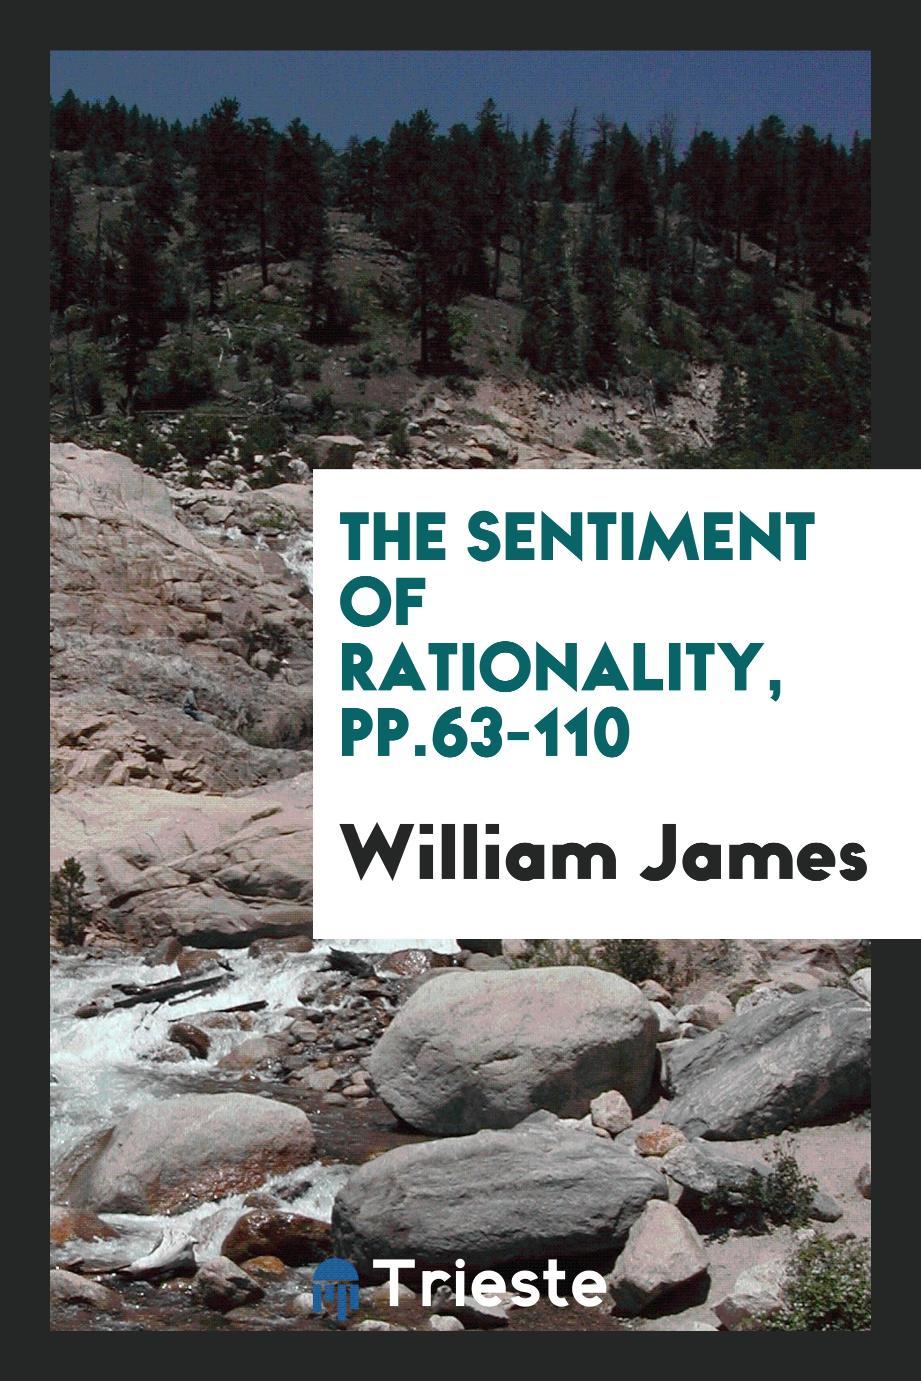 The Sentiment of Rationality, pp.63-110